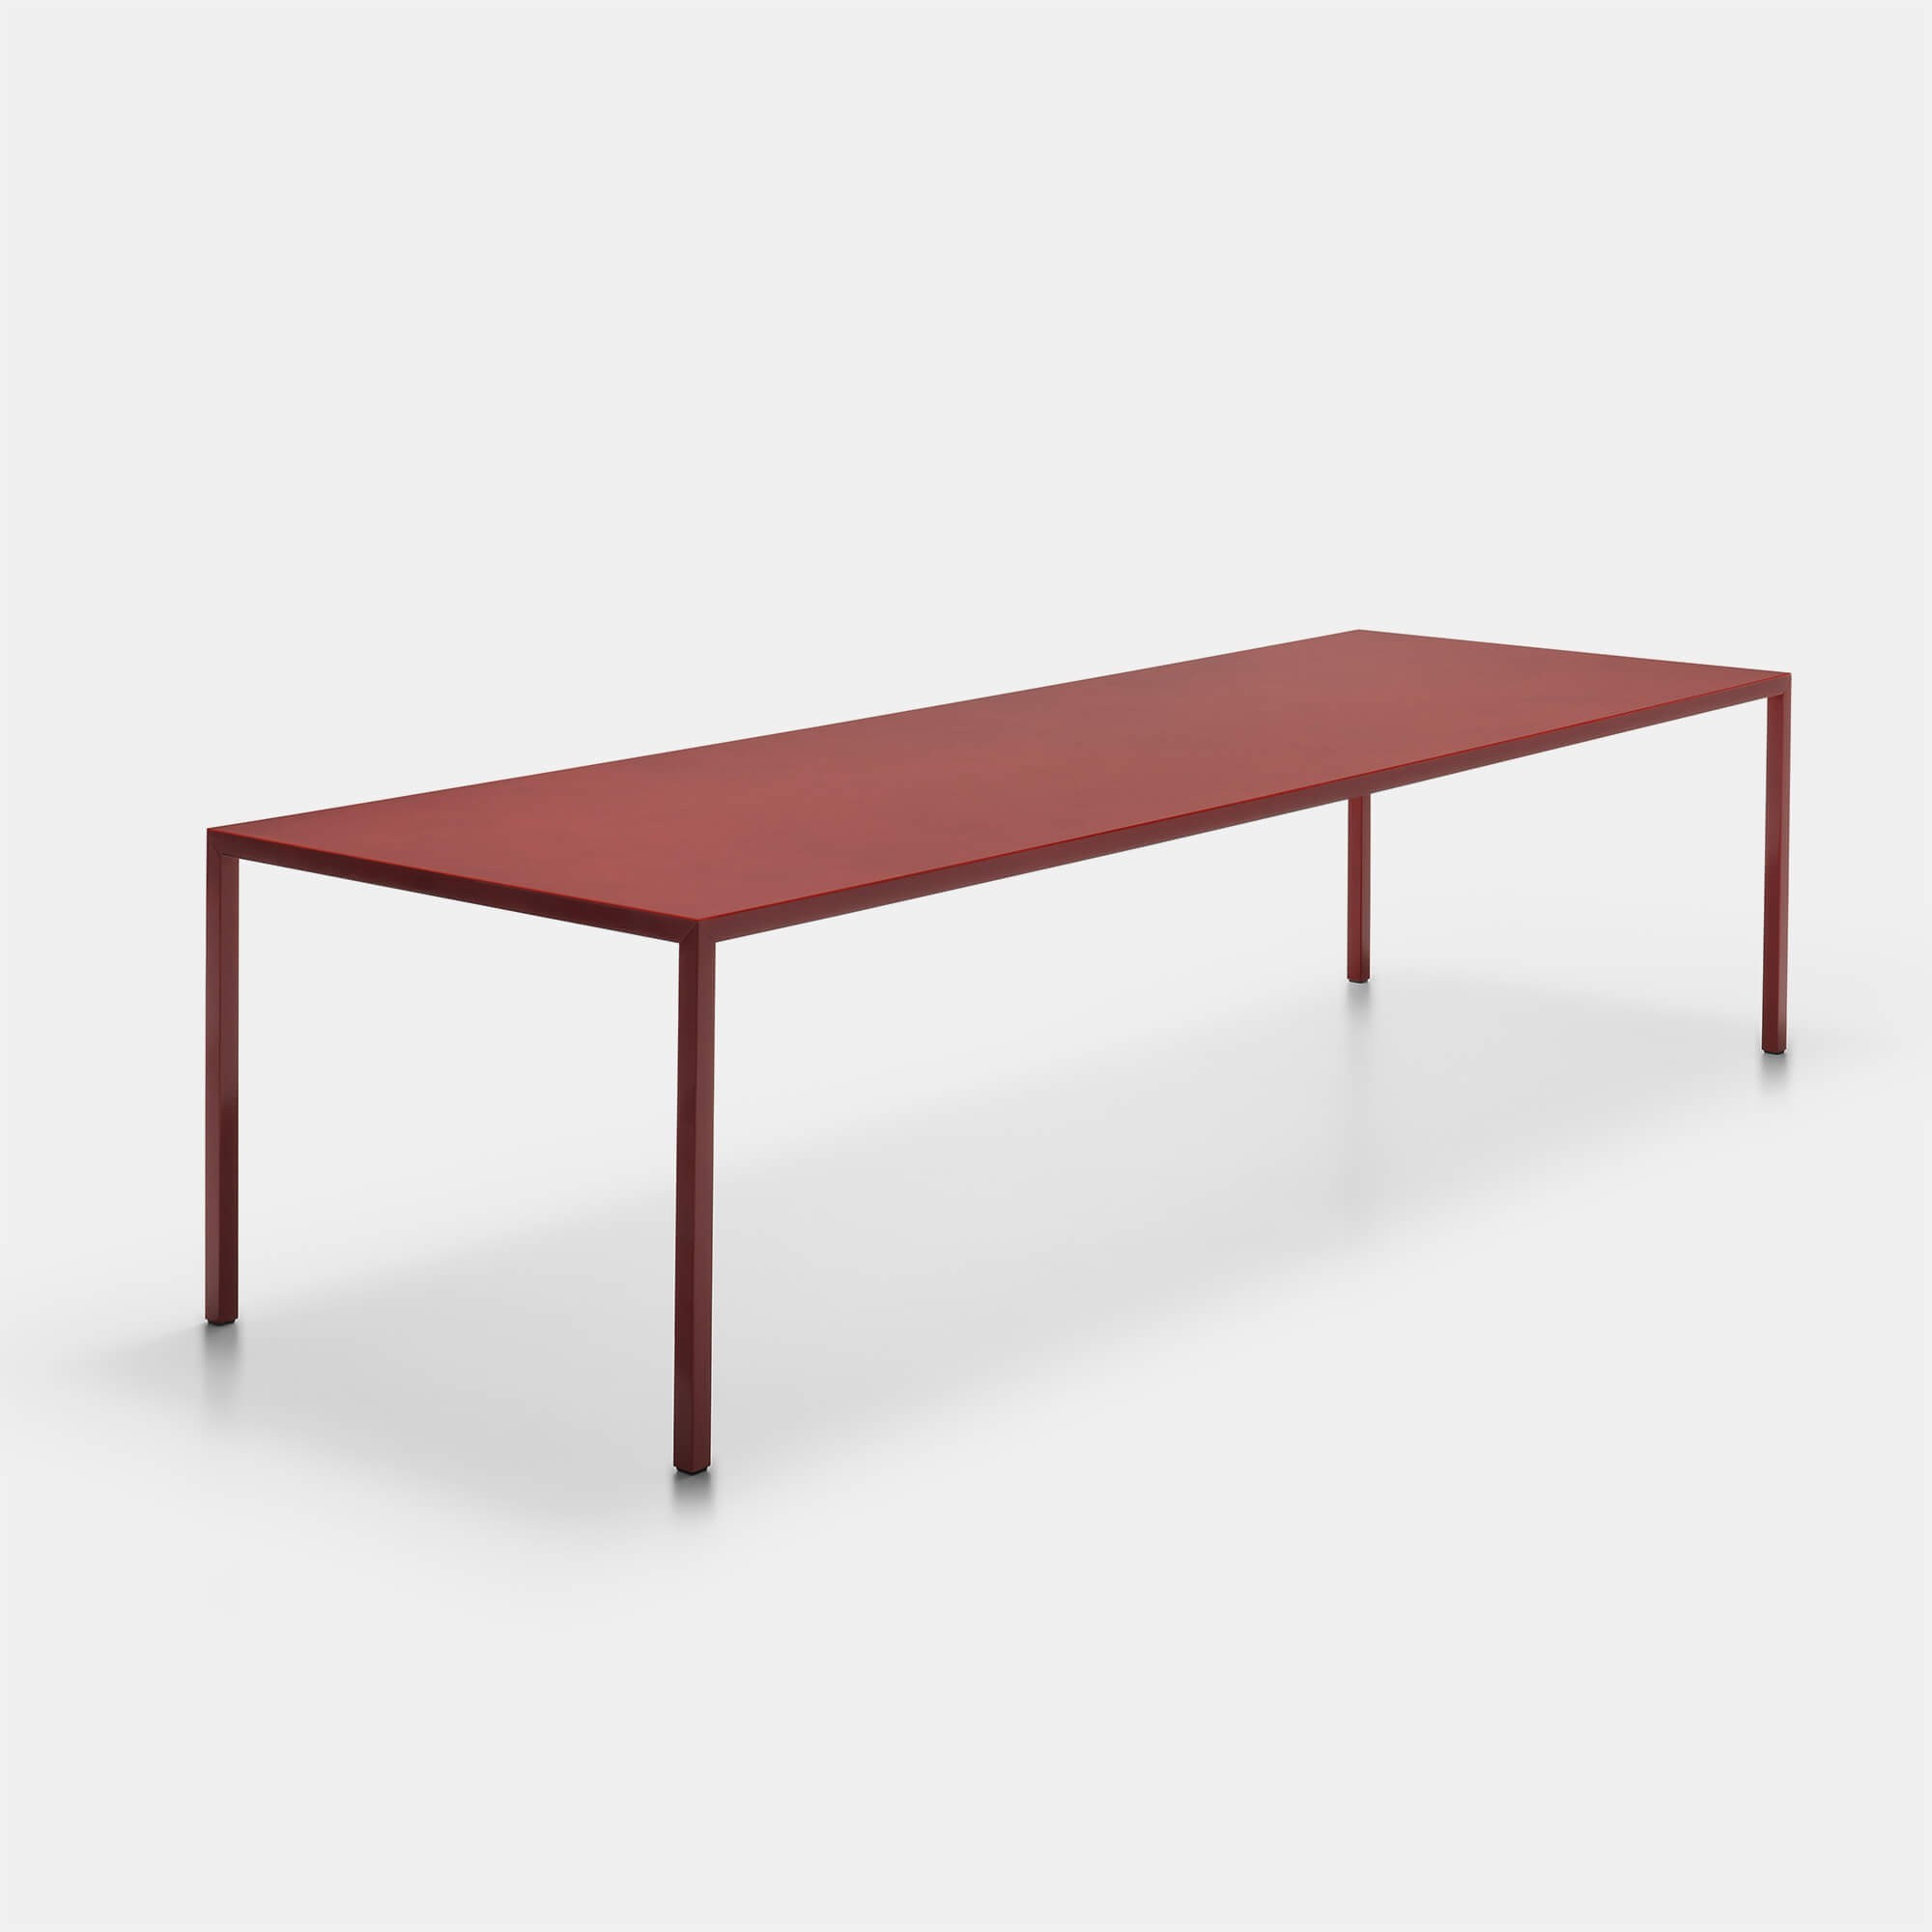 Peachy Tense Material A Long Rectangular Designer Table Made Of Home Interior And Landscaping Ologienasavecom